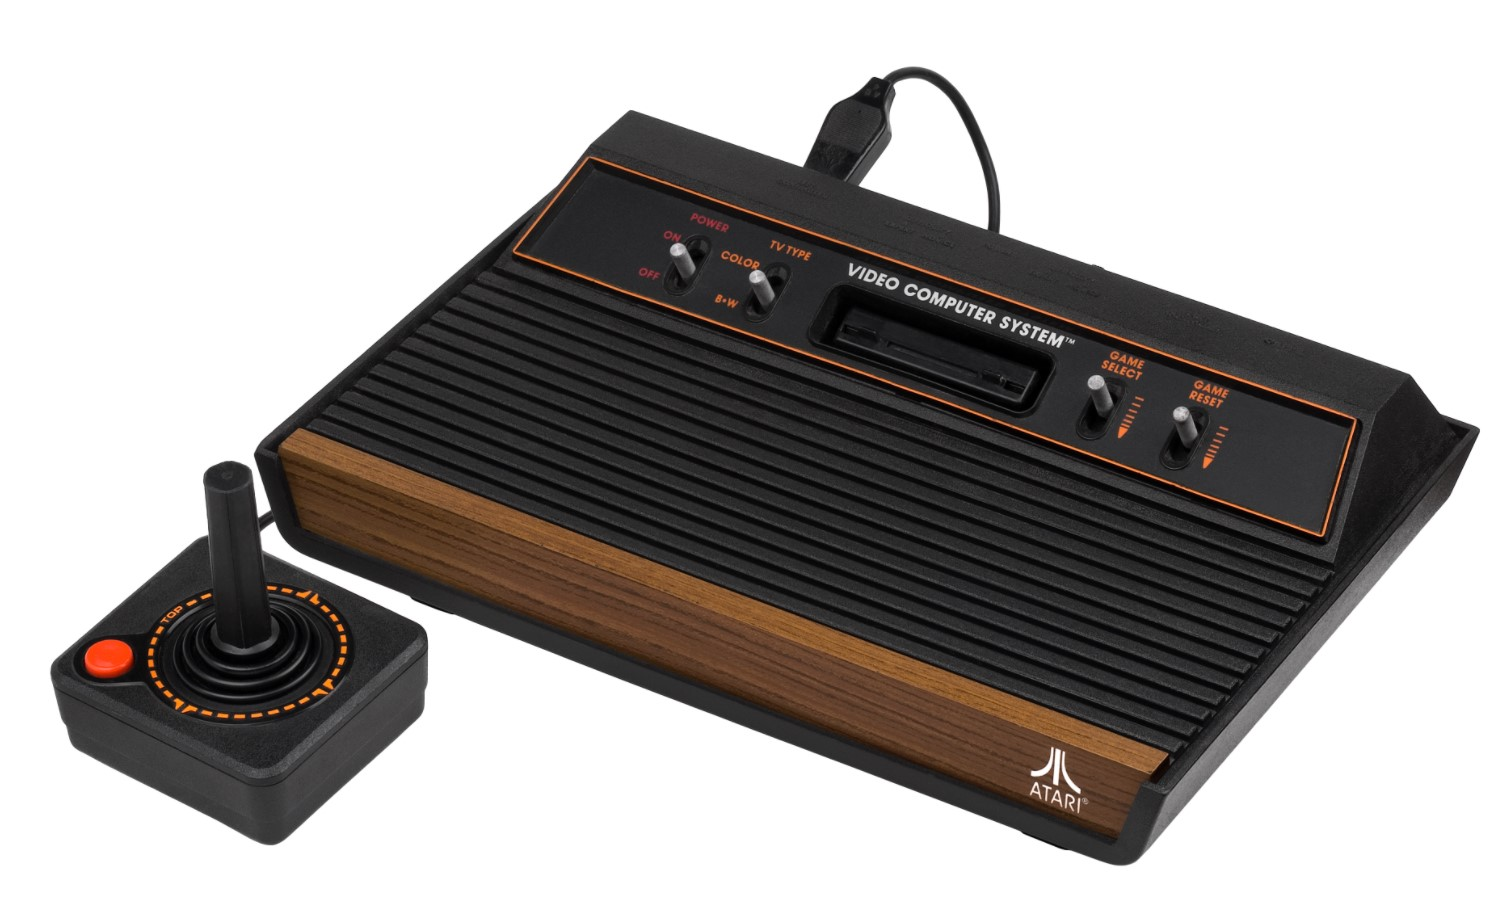 Which video game system debuted in the 1970?